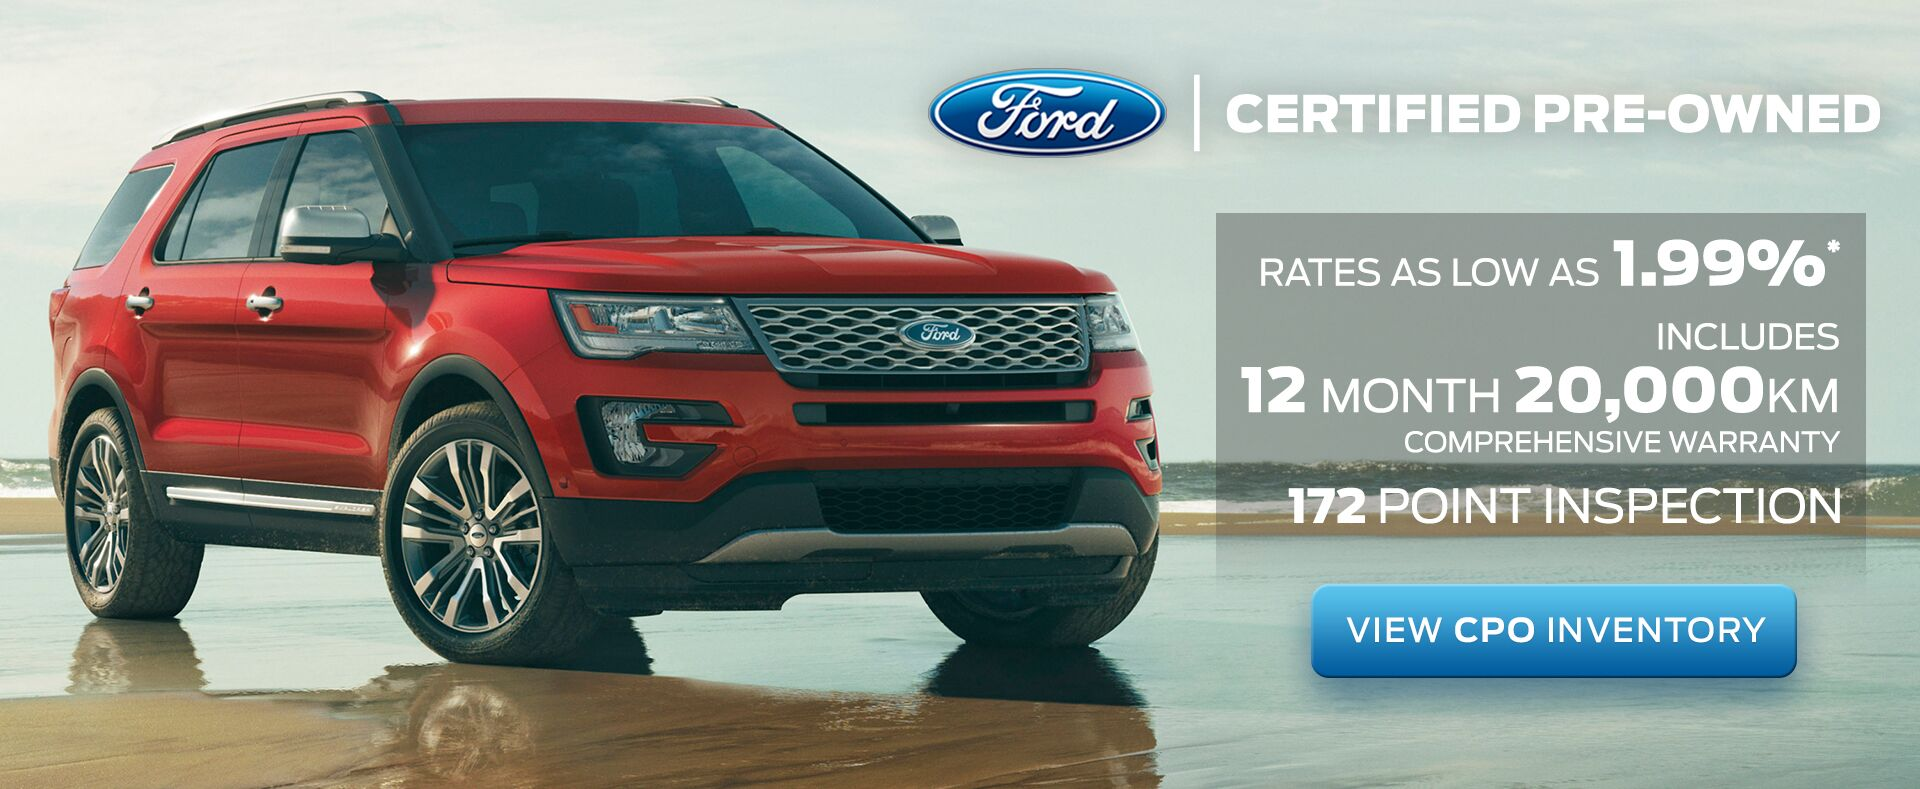 Ken Knapp Ford - Certified Pre-Owned